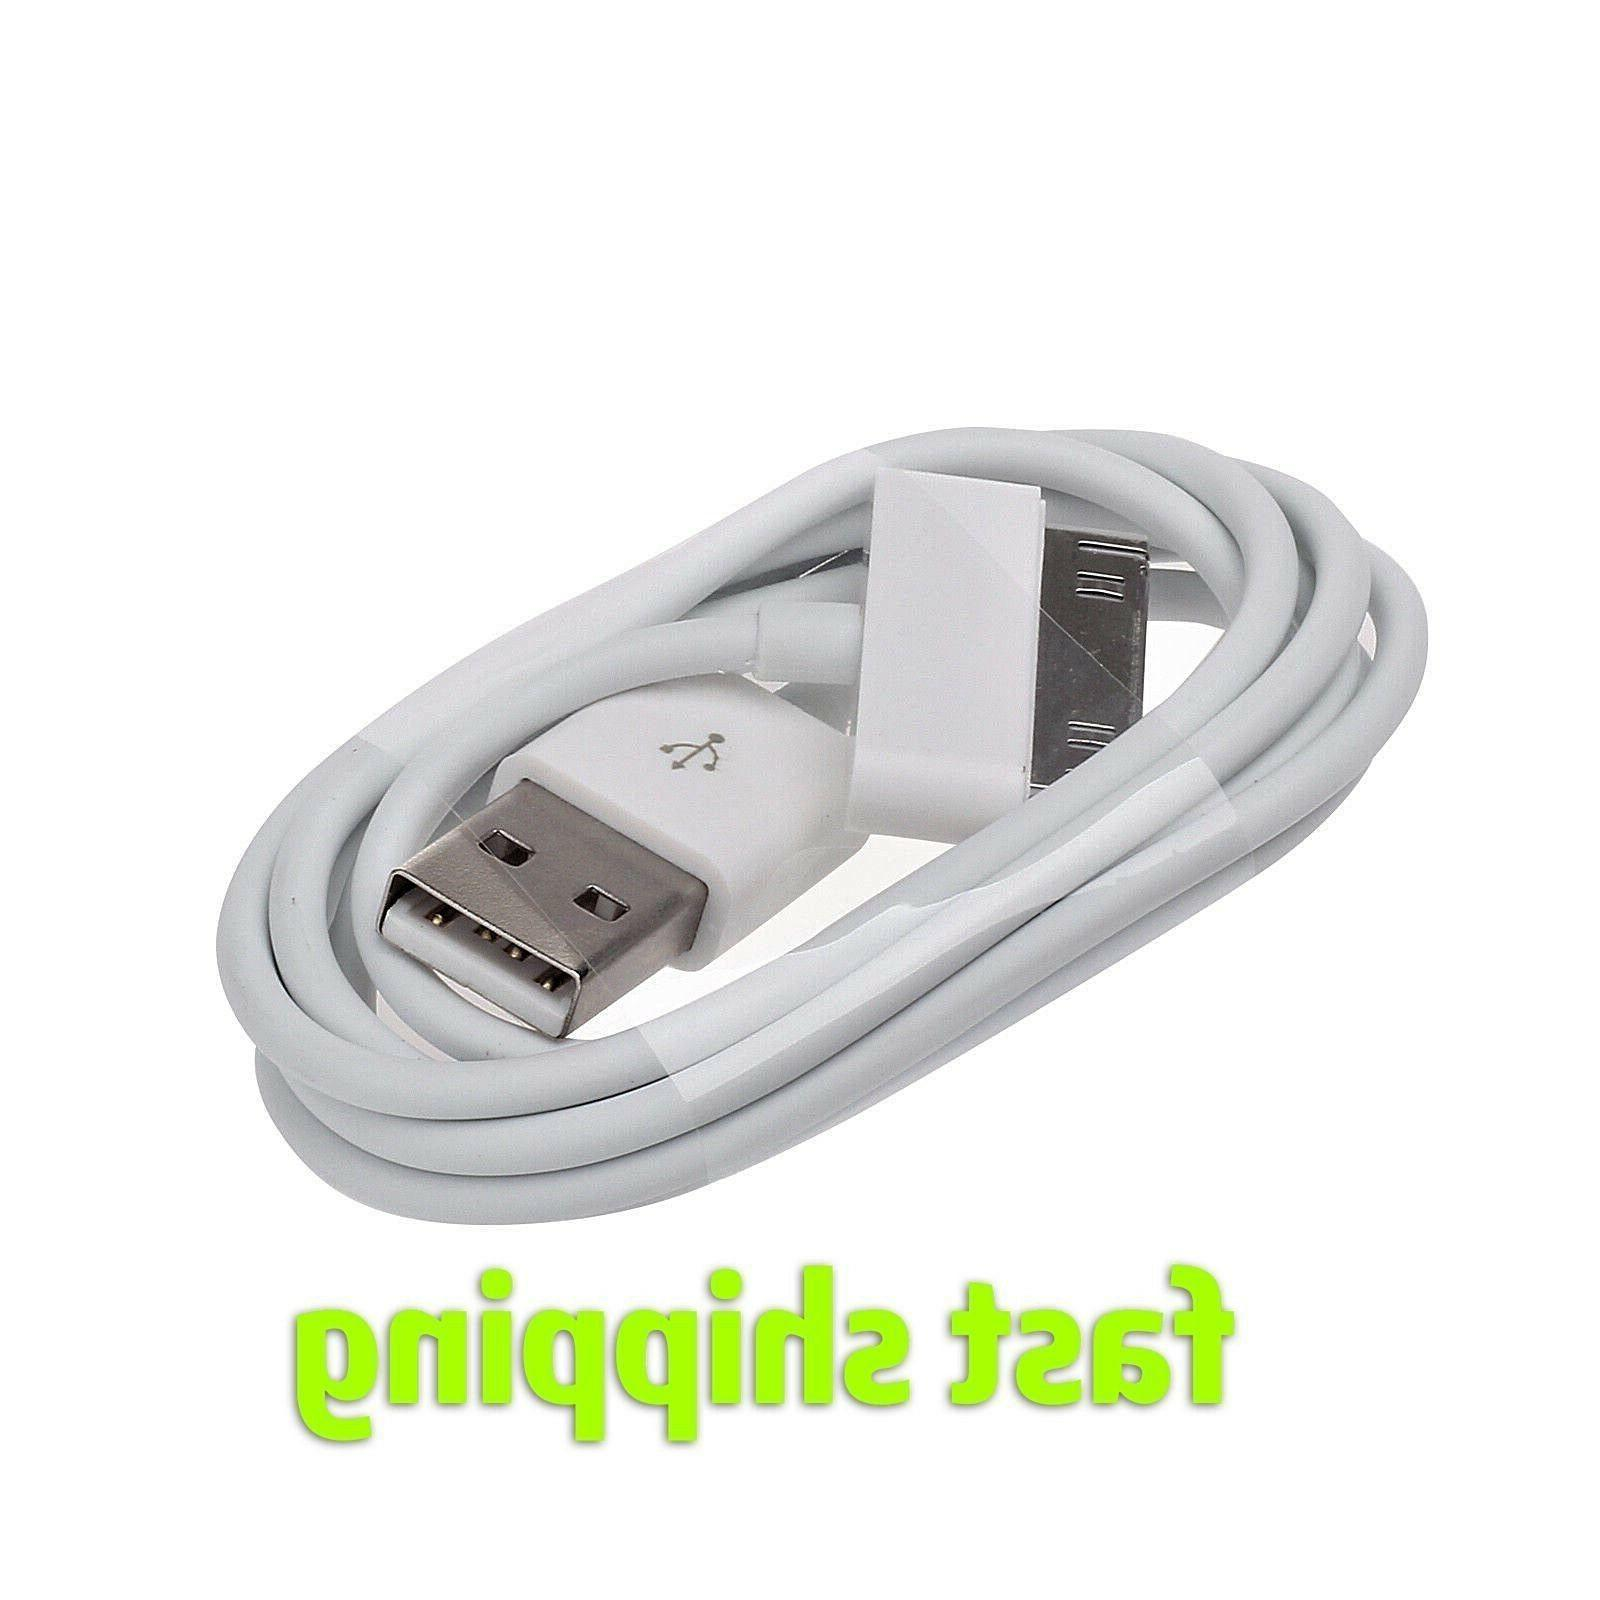 usb data sync cable cord charger